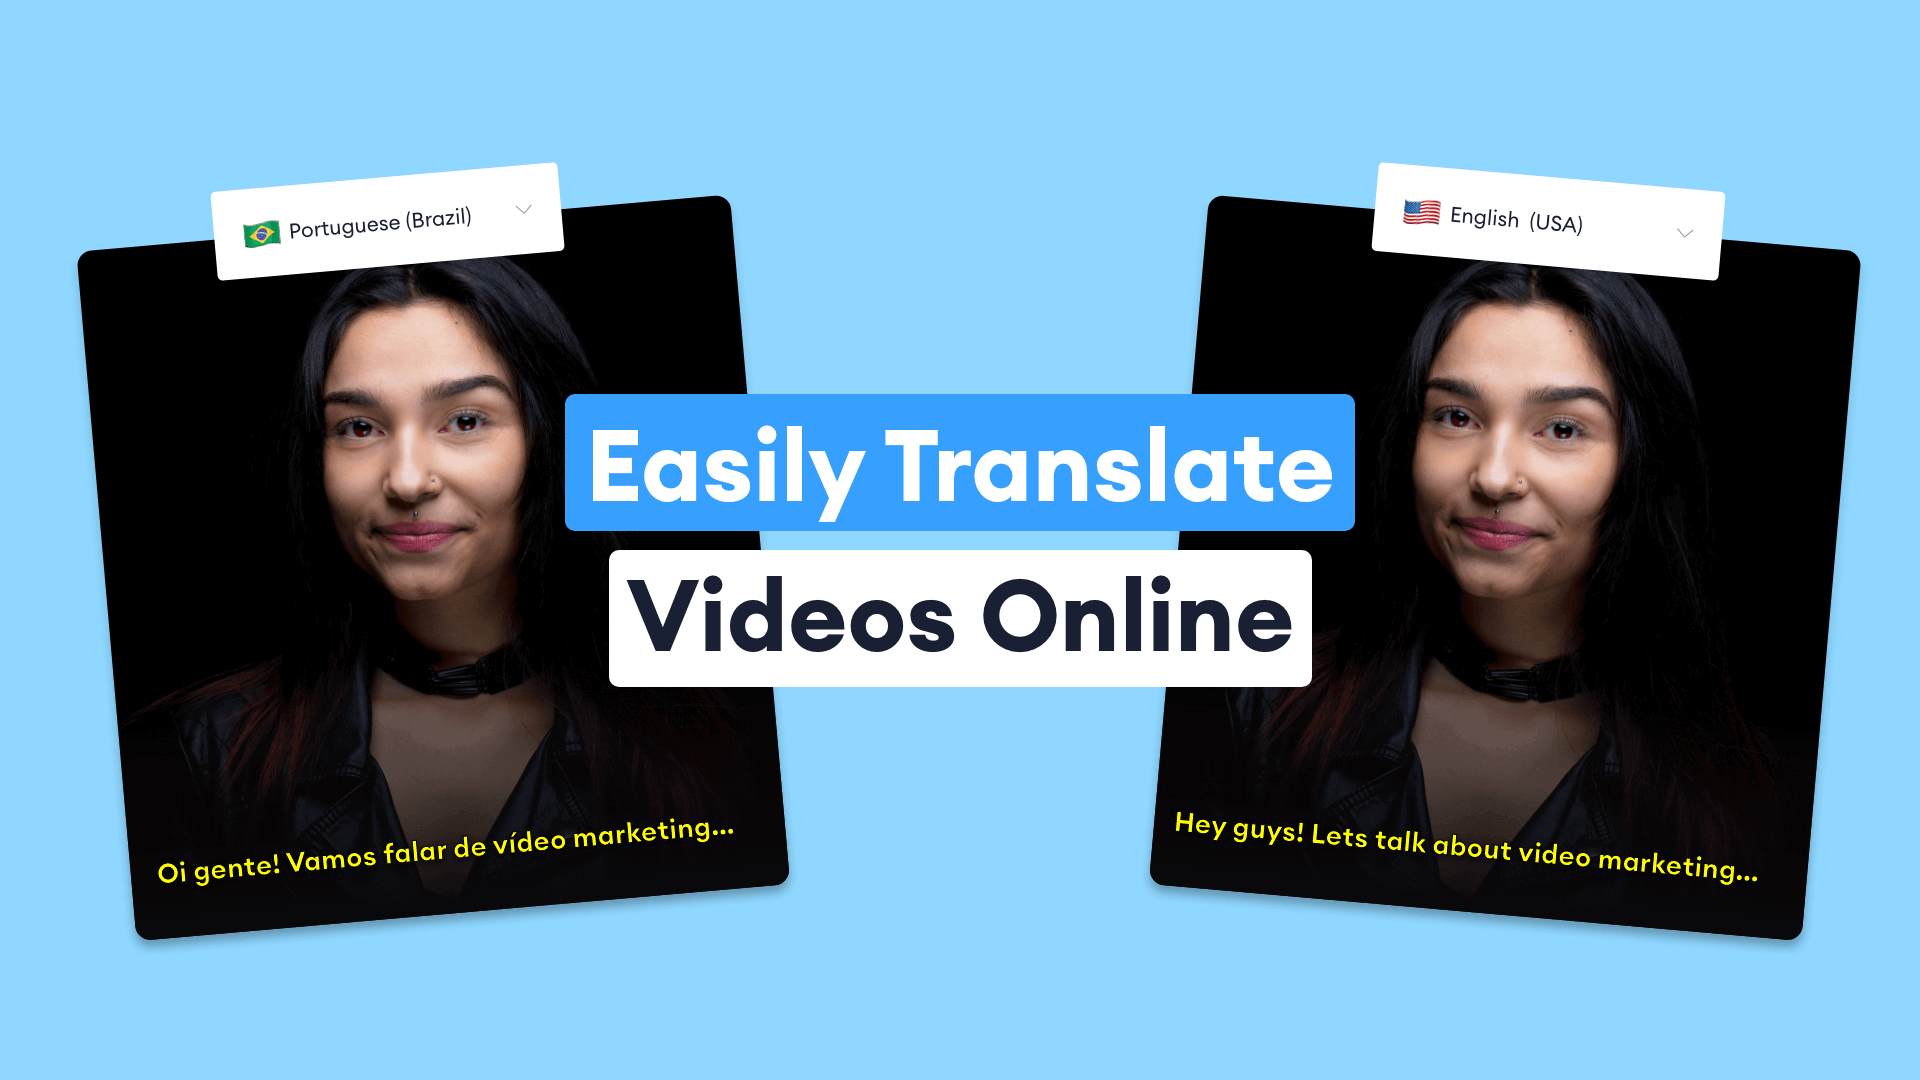 How To Easily Translate Video To English And Other Languages